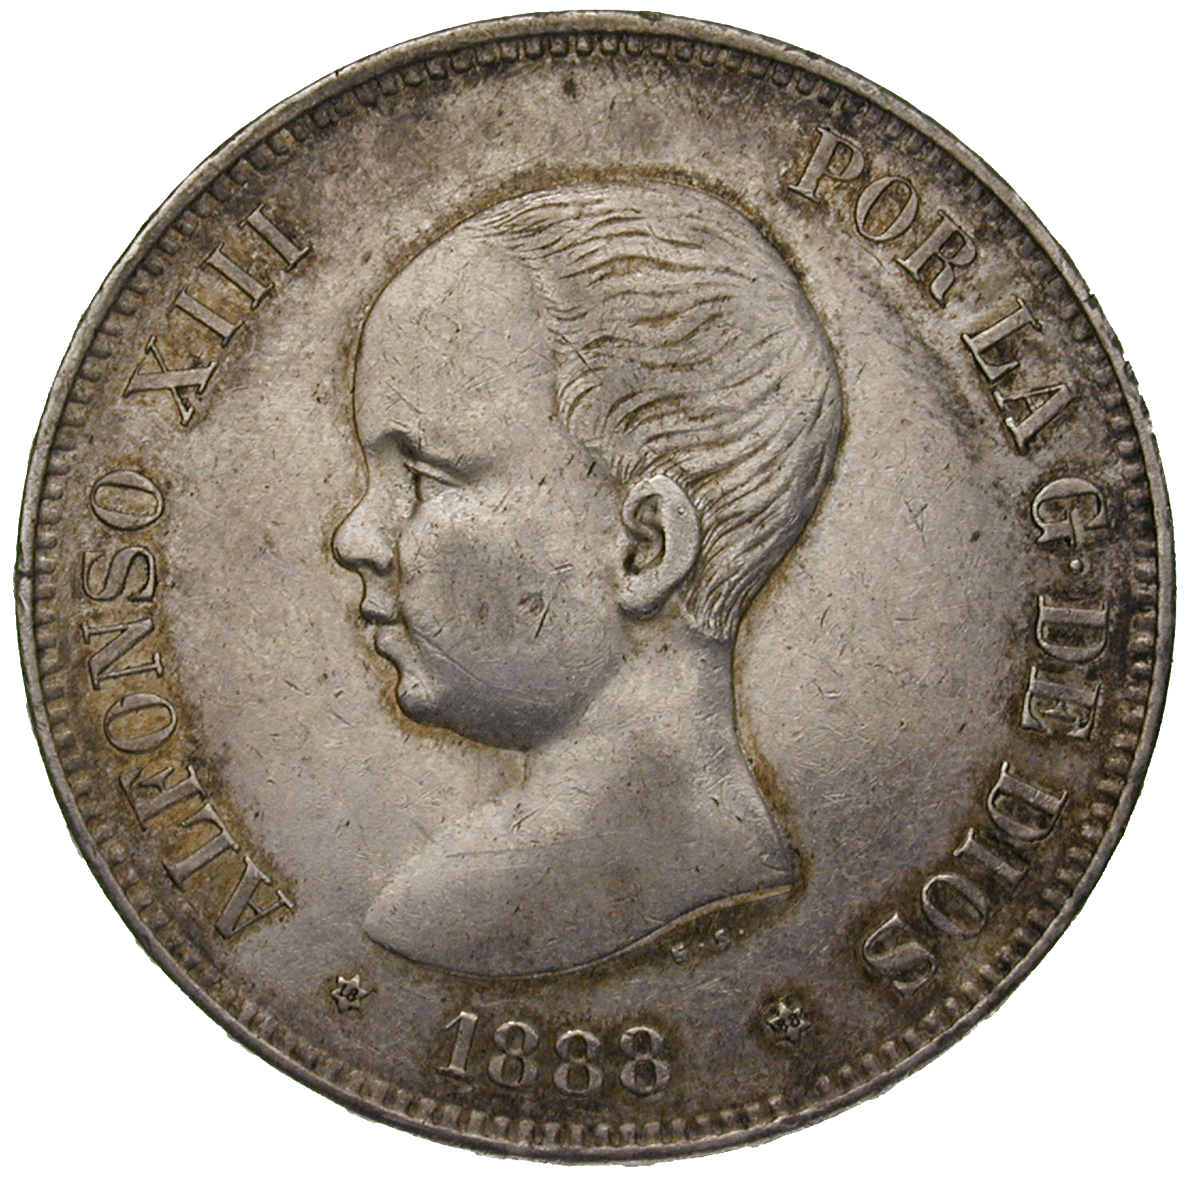 Kingdom of Spain, Alfons XIII , 5 Pesetas 1888 (obverse)